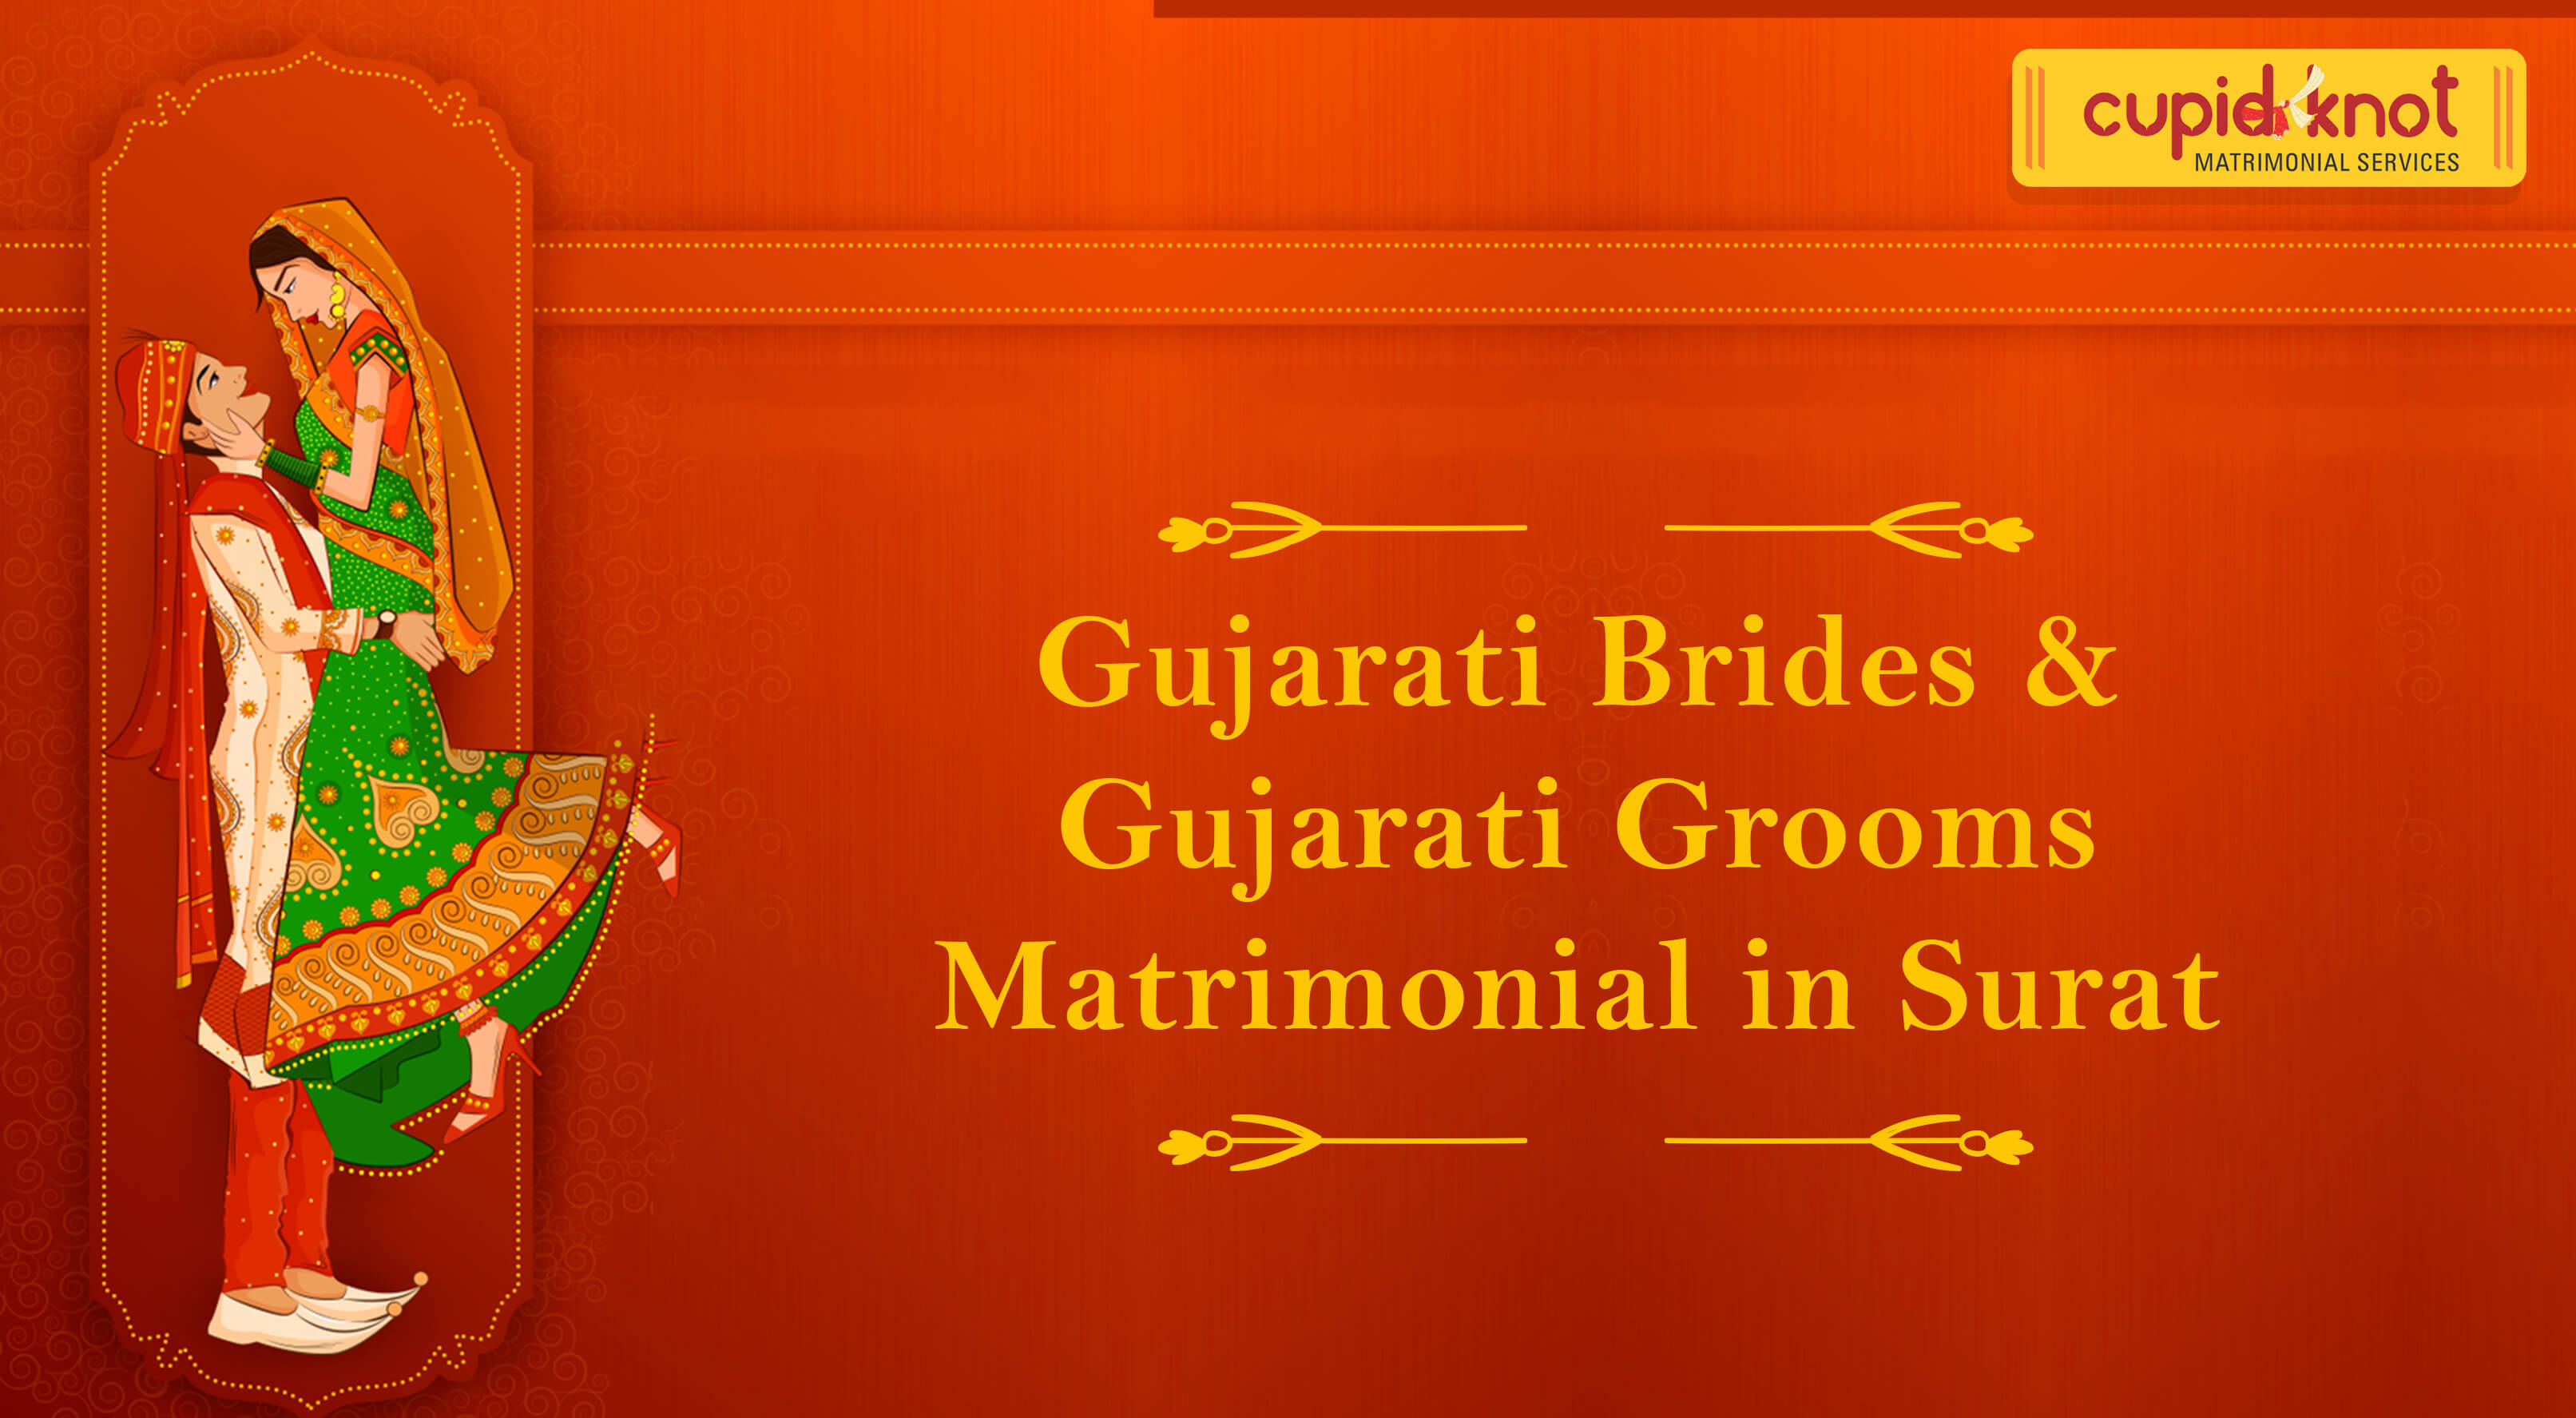 Gujarati brides and Gujarati grooms matrimonial in Surat